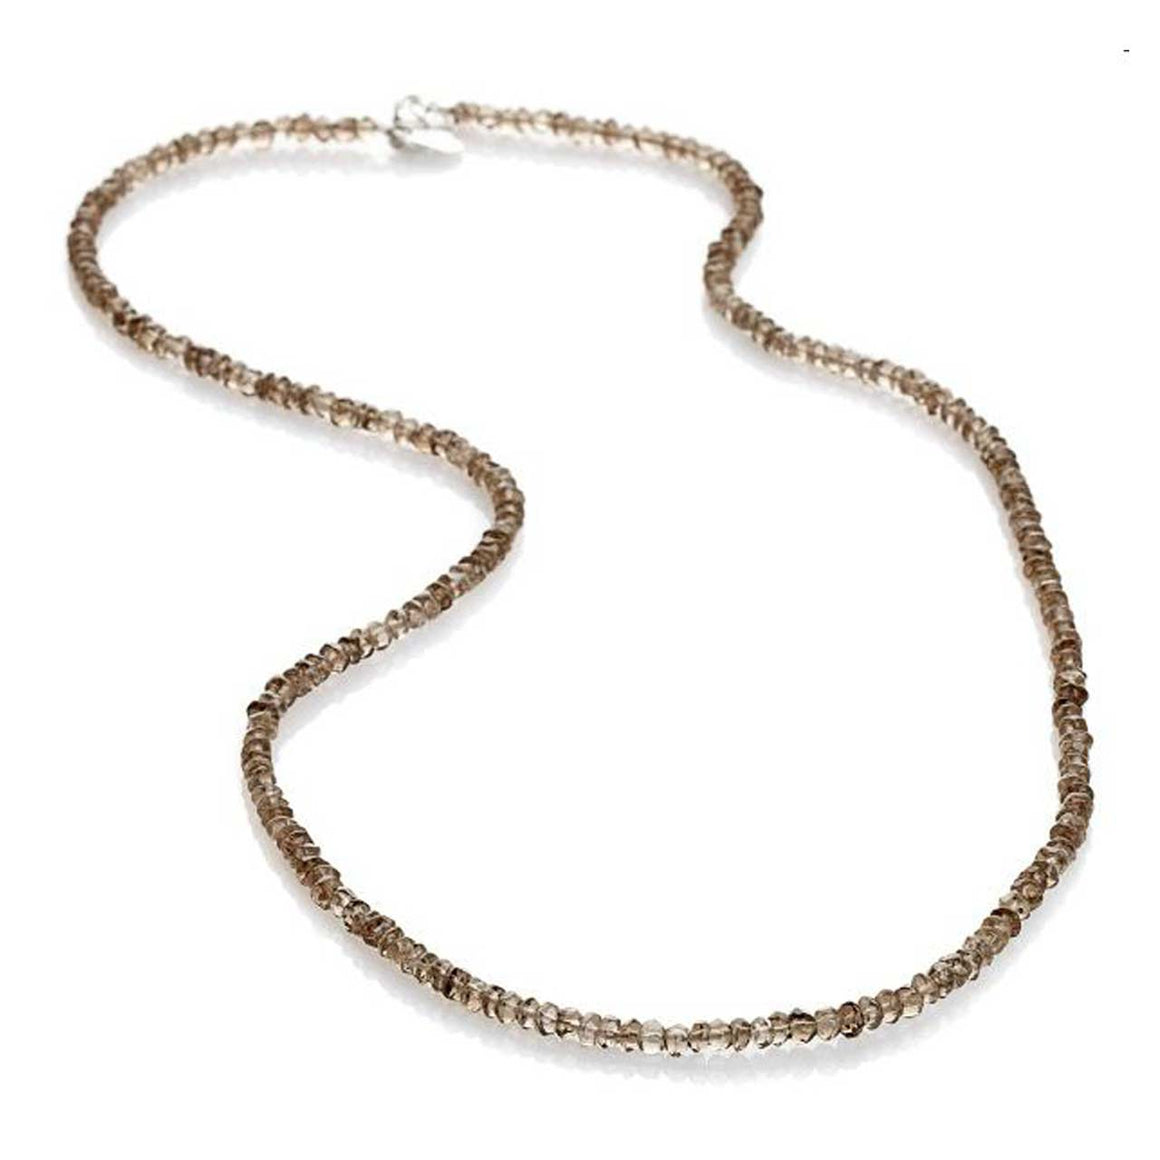 "Smokey Quartz 19"" Gemstone Bead Necklace"